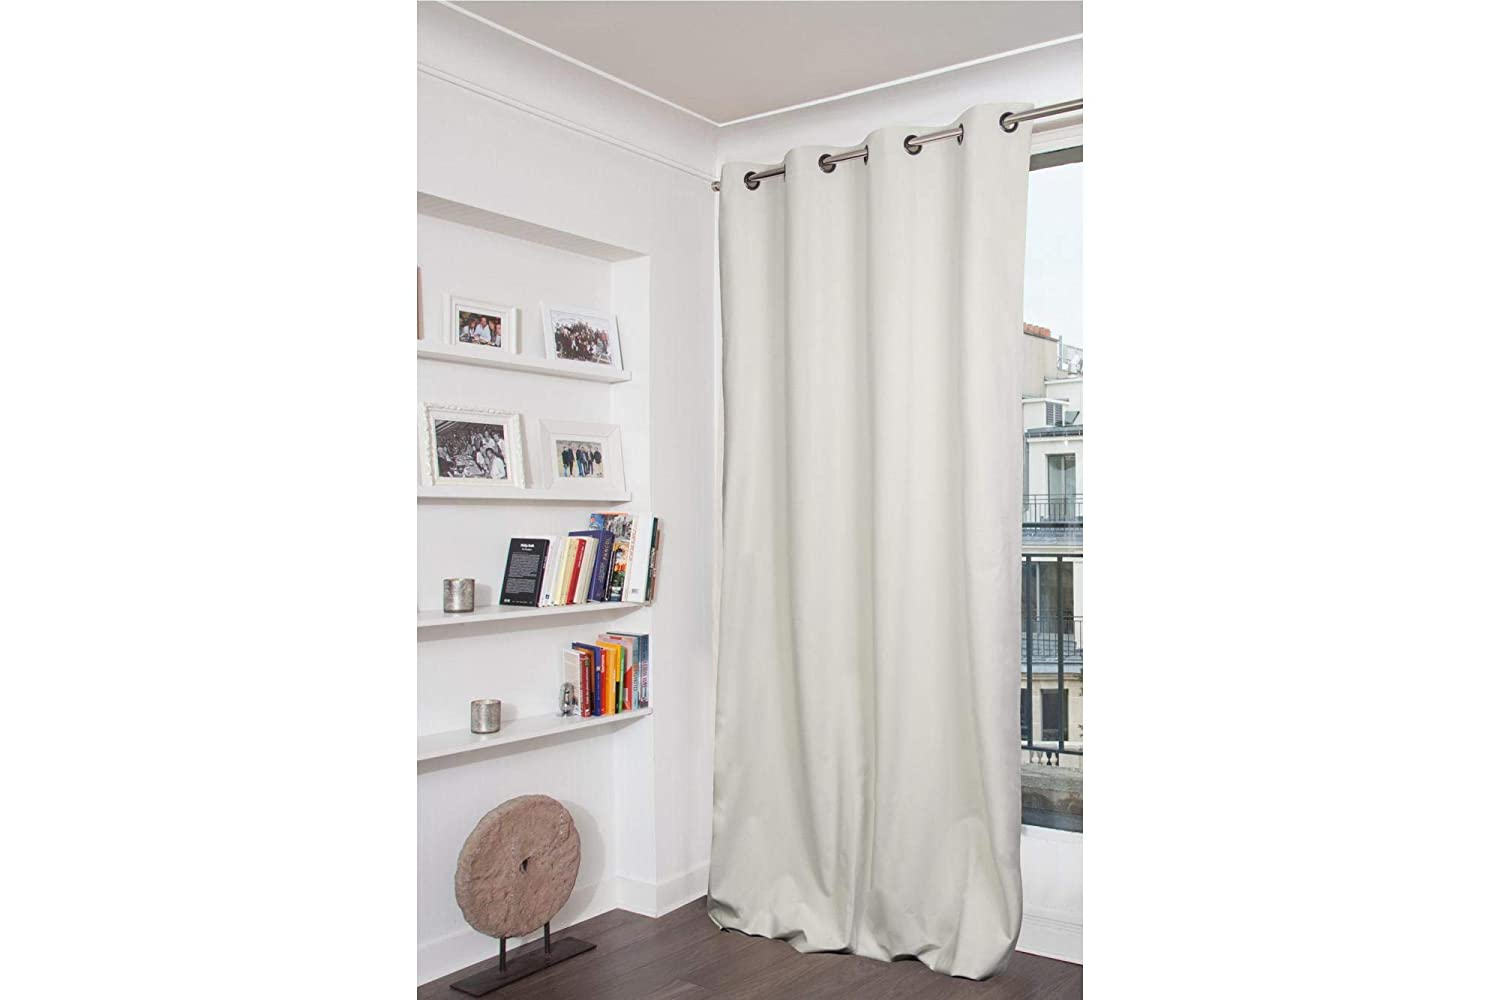 Ras Decor Linen Curtain panel-W24 X L80 Inches Off White Cotton Curtains for Living Room and Bedroom,Window Curtains Set of 2 Panels